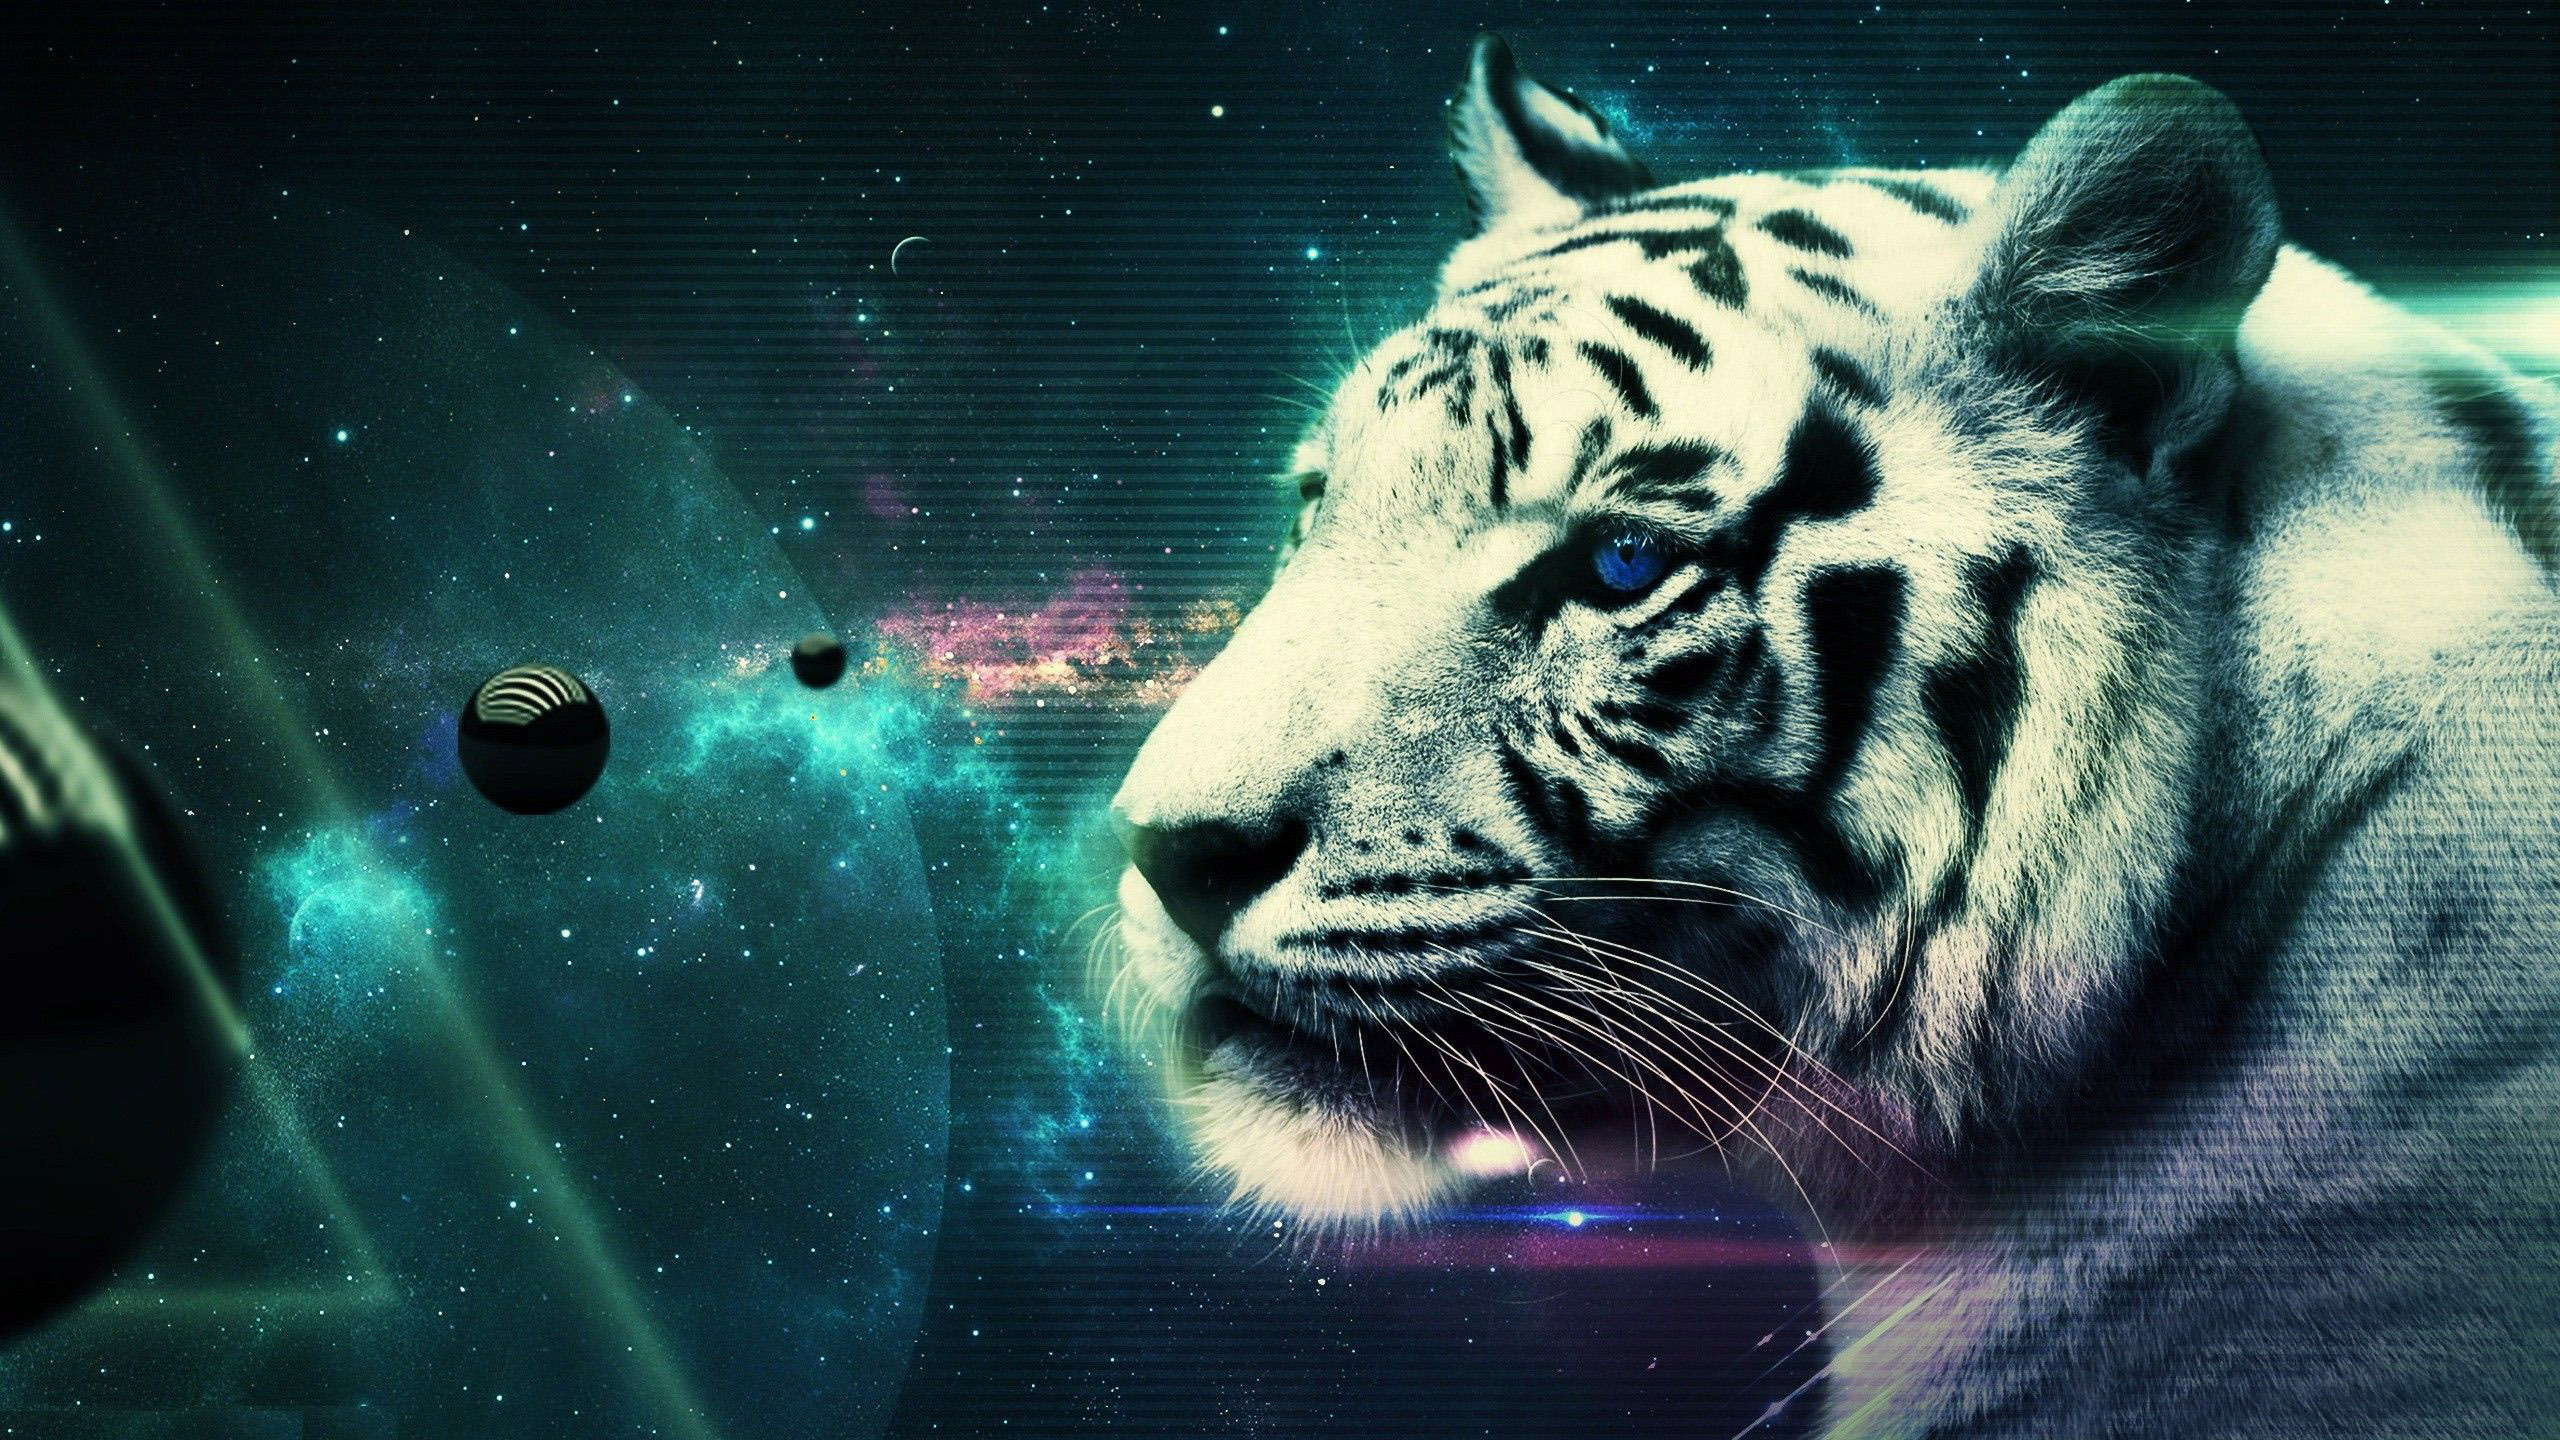 White Tiger Hd Wallpaper - WallpaperSafari